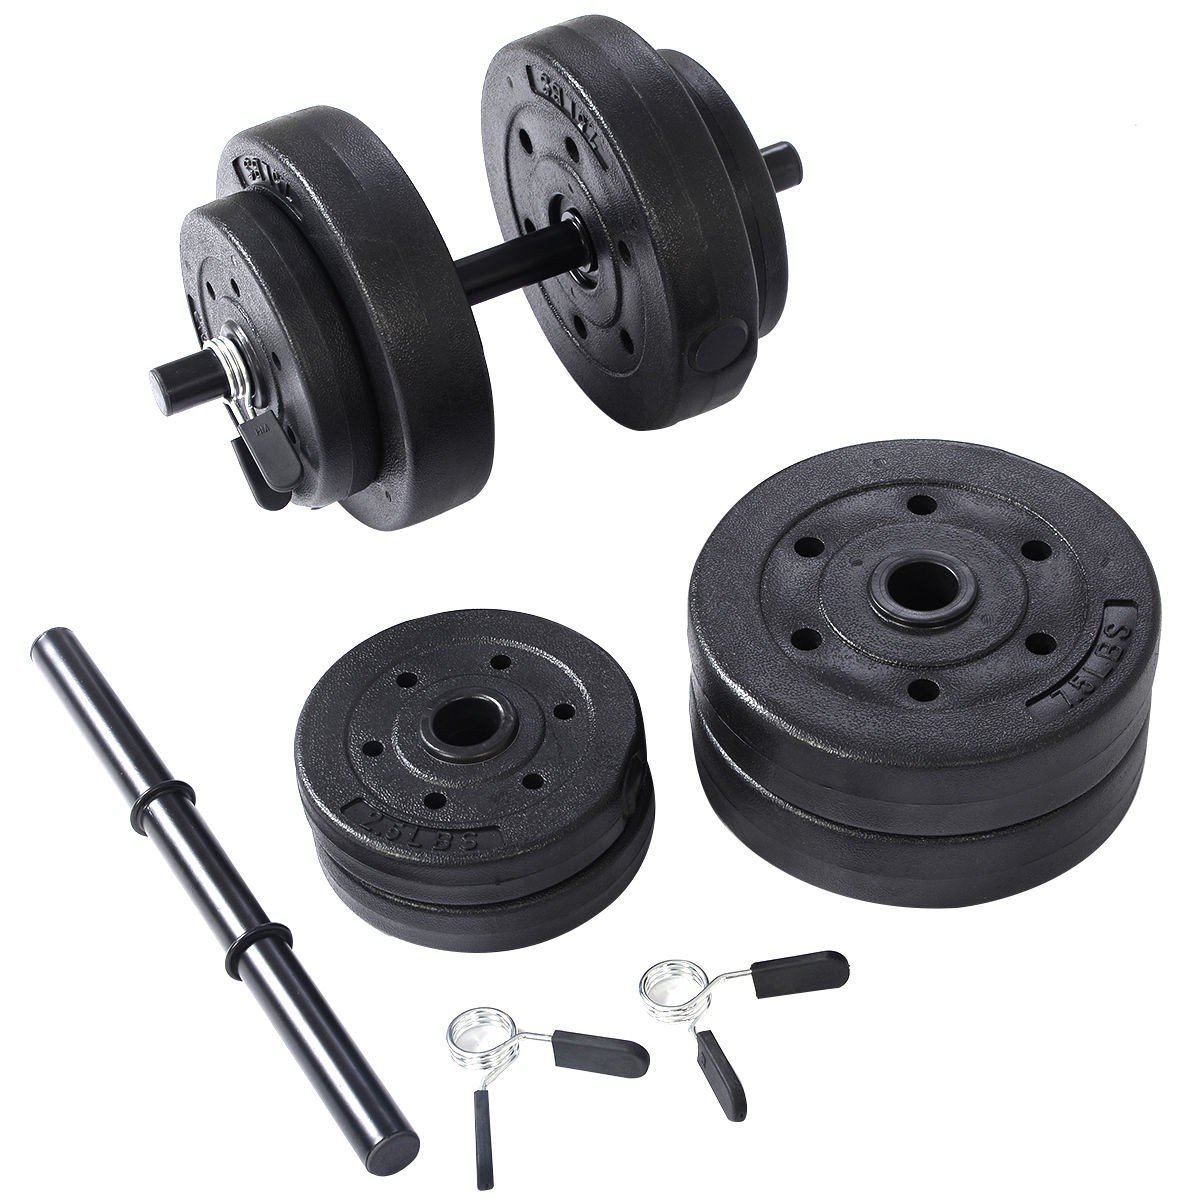 Weight Dumbbell Set 40 LB Adjustable Cap Gym Barbell Plates Body Workout - Perfect For Arms, Chest, Back And Legs - Suitable For Basic Strength Exercises - Included Buckles For Fixing The Plates